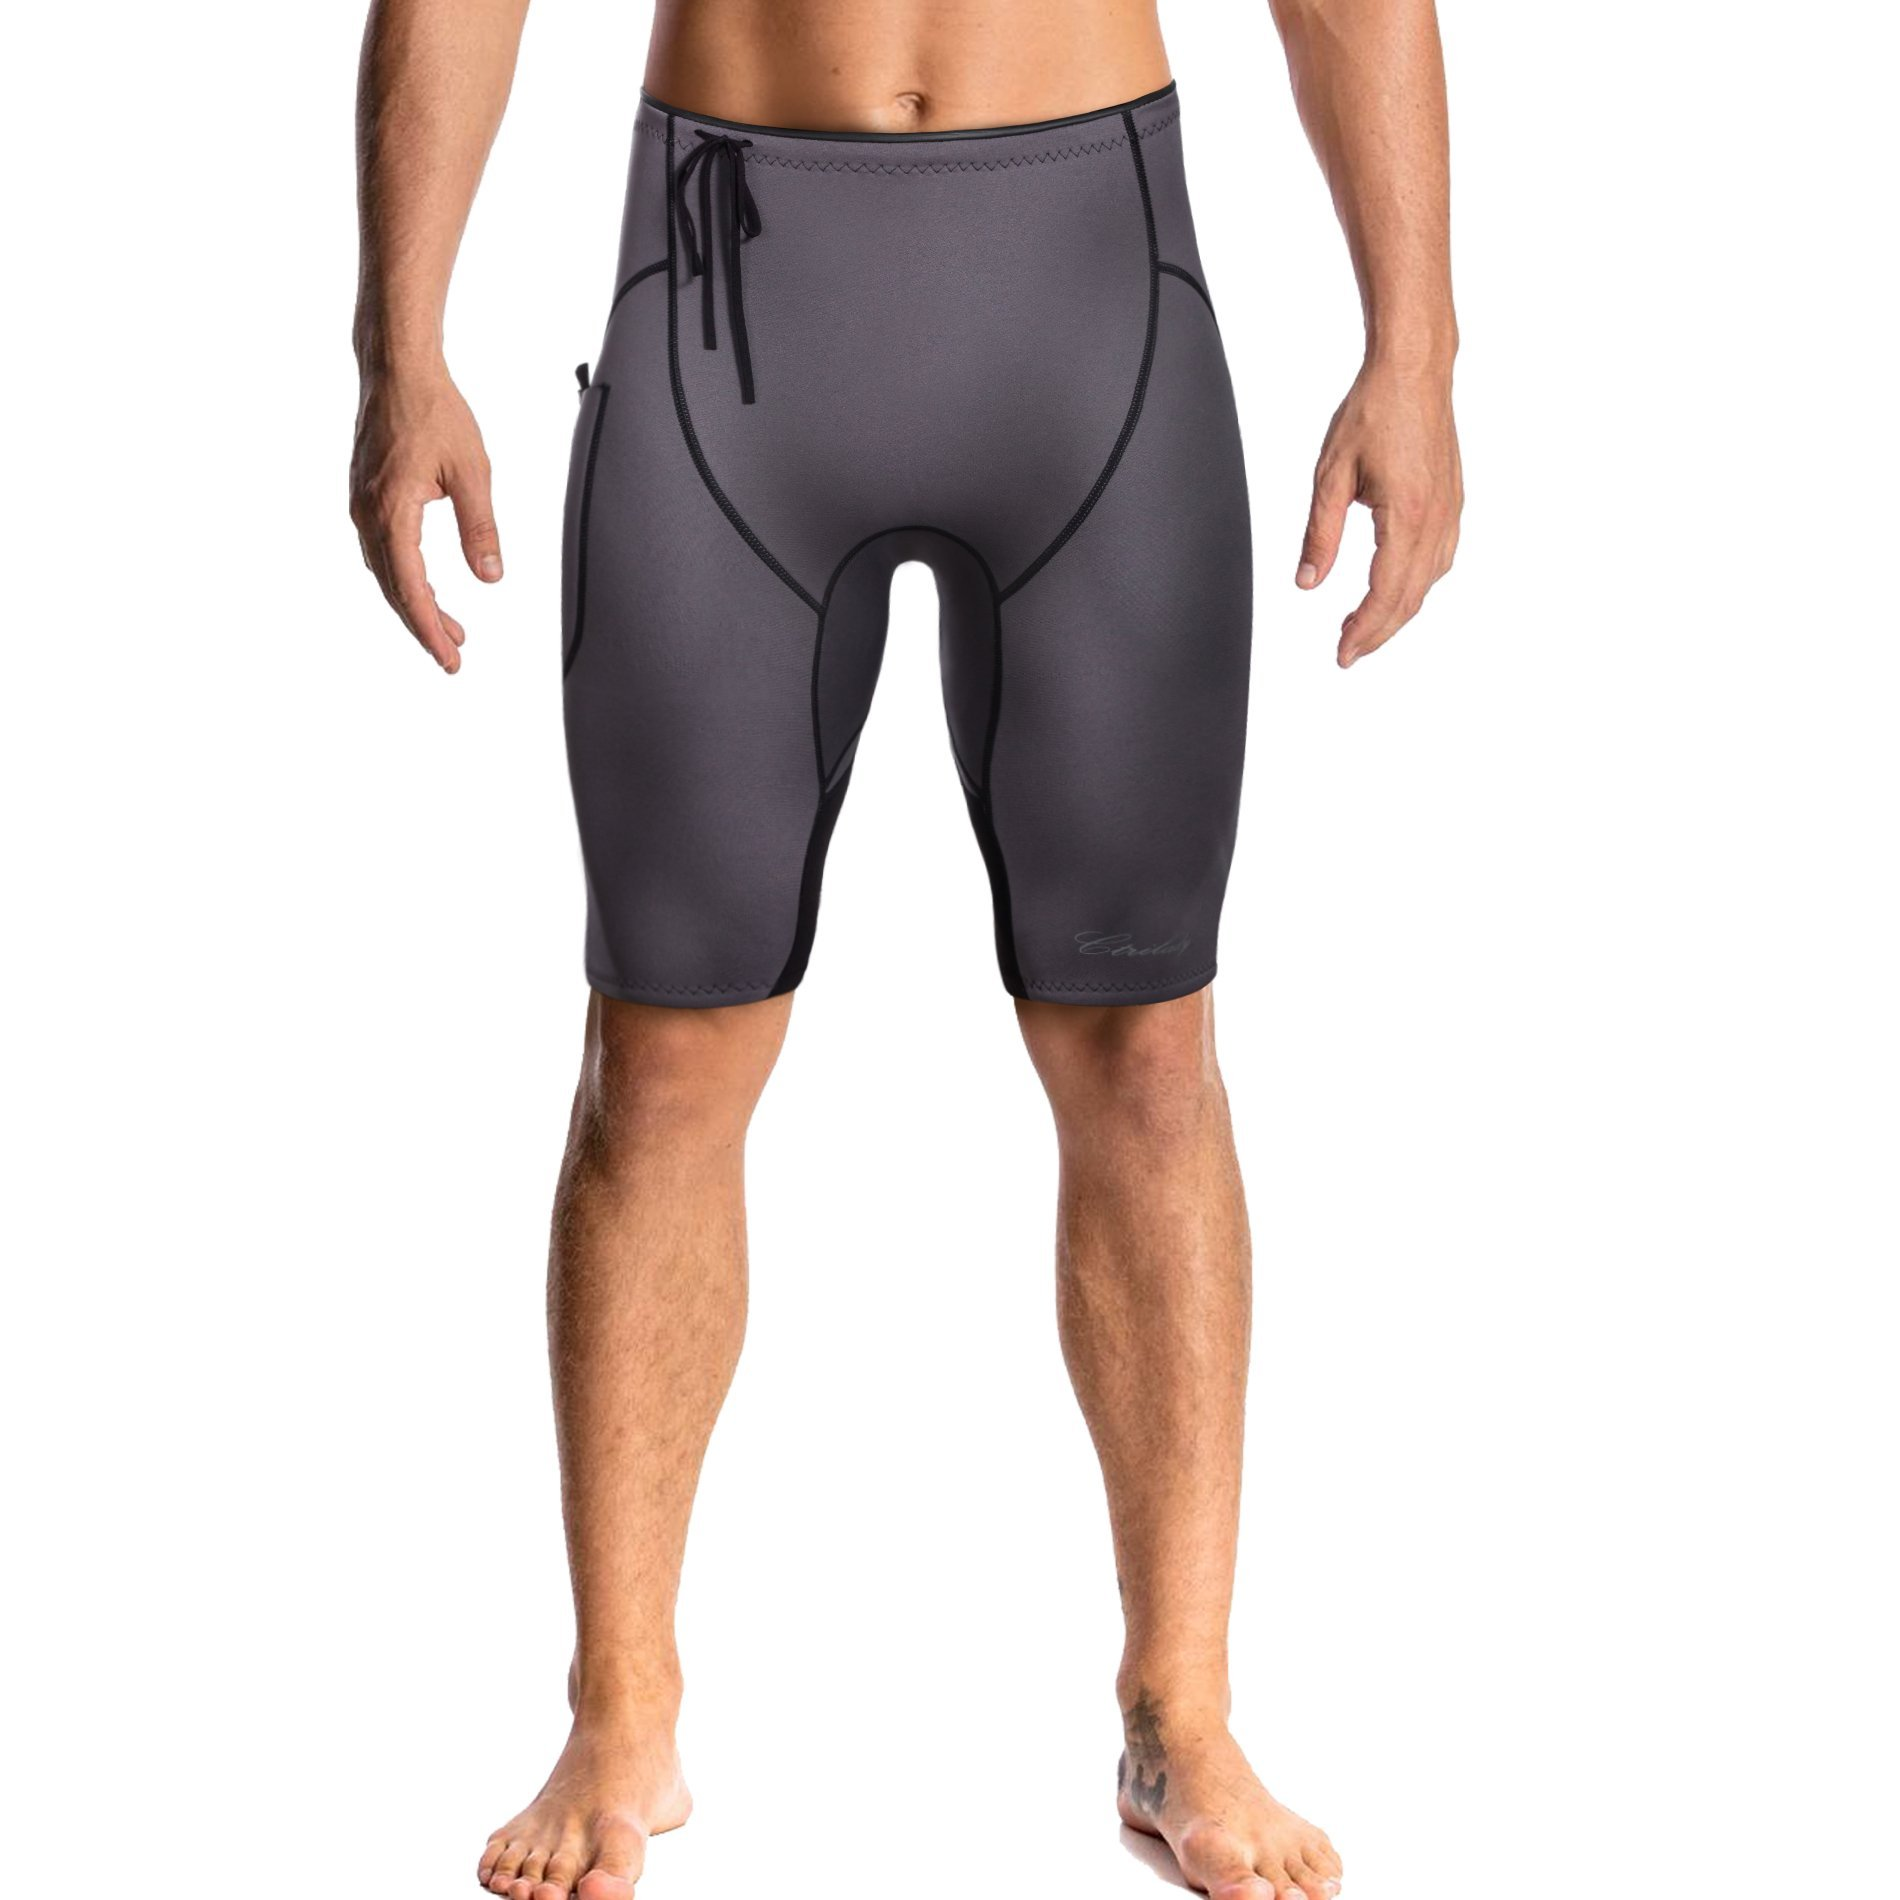 CtriLady 2mm Premium Neoprene Wetsuit Shorts Sweat Fitness Pants with Pocket for Snorkeling Surfing Swimming Training (Grey+Black, L) by CtriLady